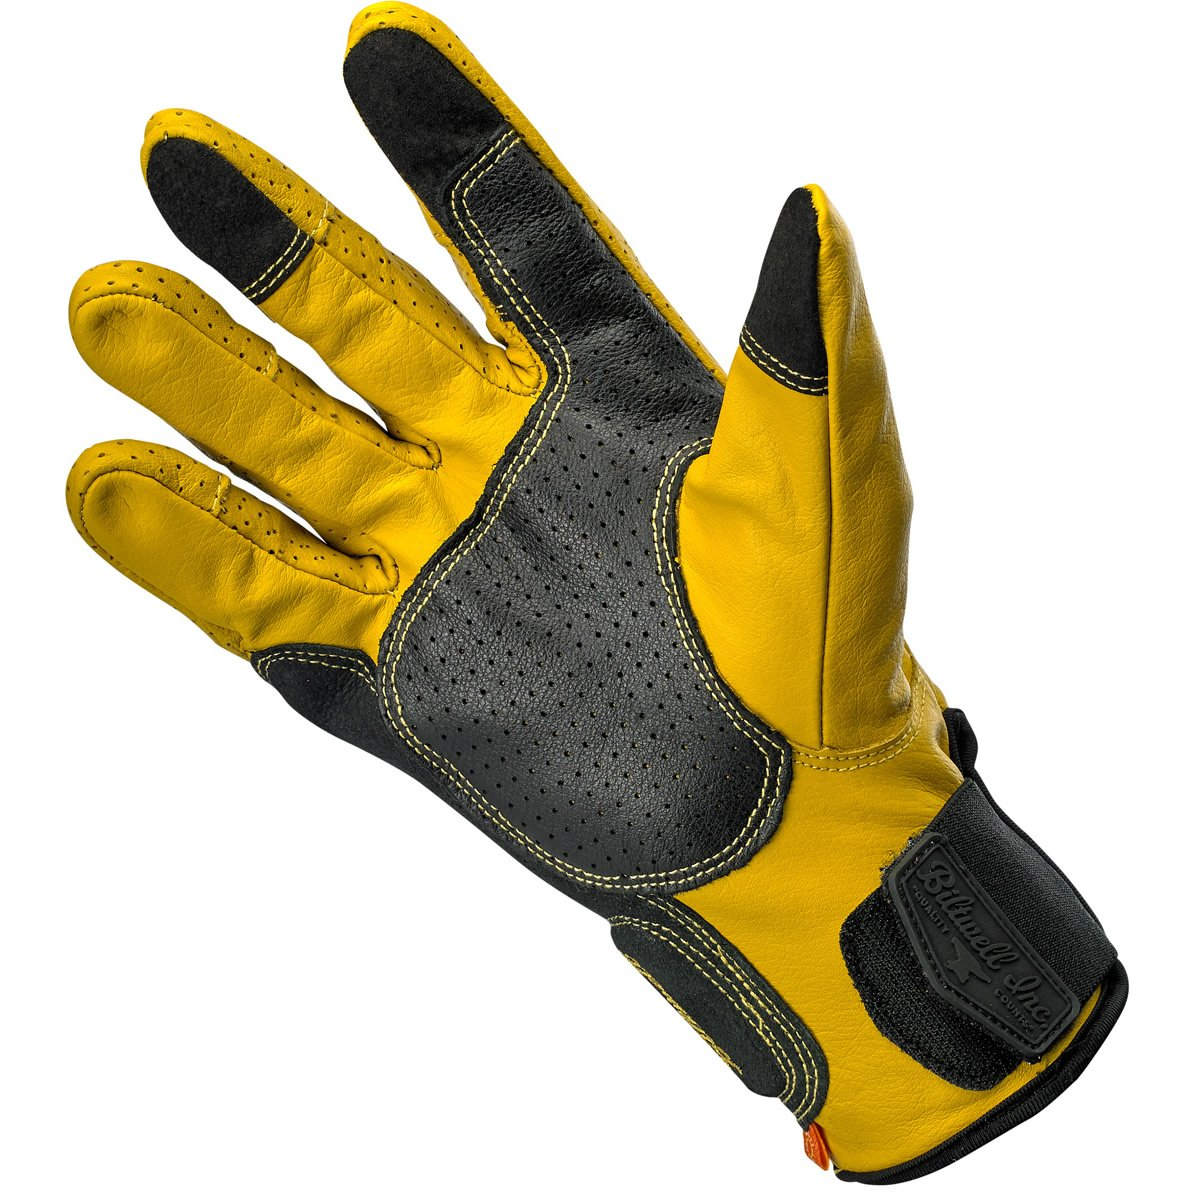 Borrego Gloves Gold/Black